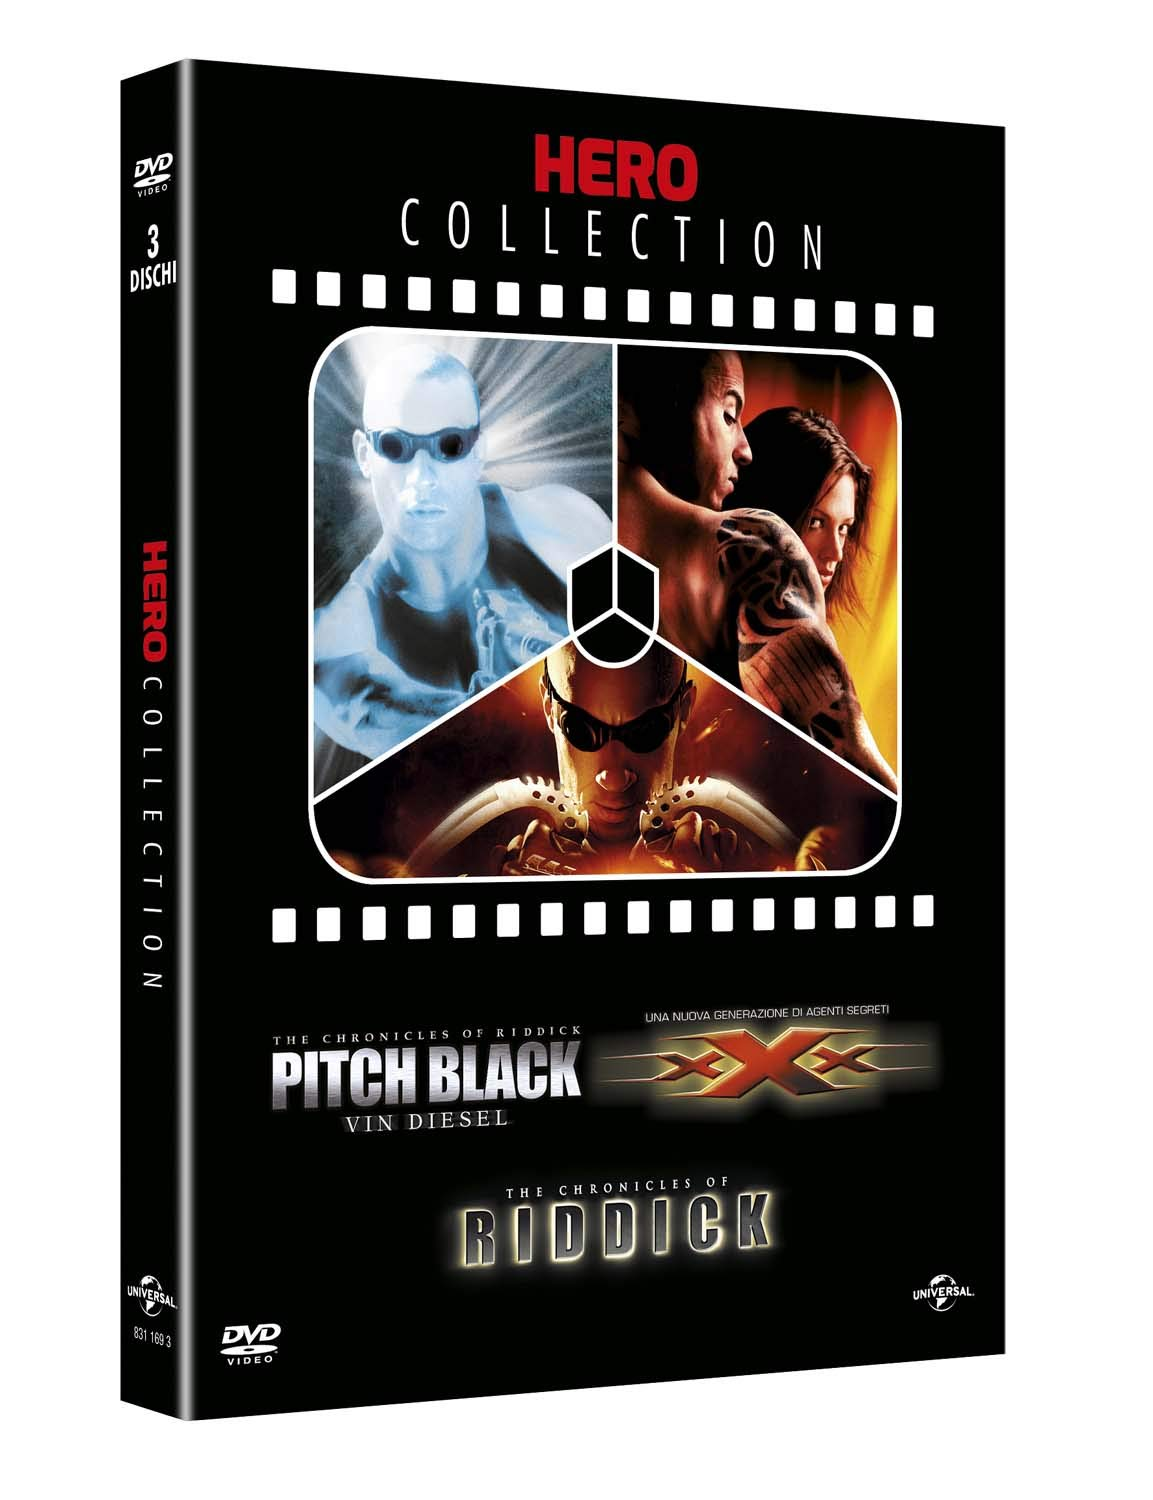 COF.HERO COLLECTION (3 DVD ) PITCH BLACK - XXX - THE CHRONICLES